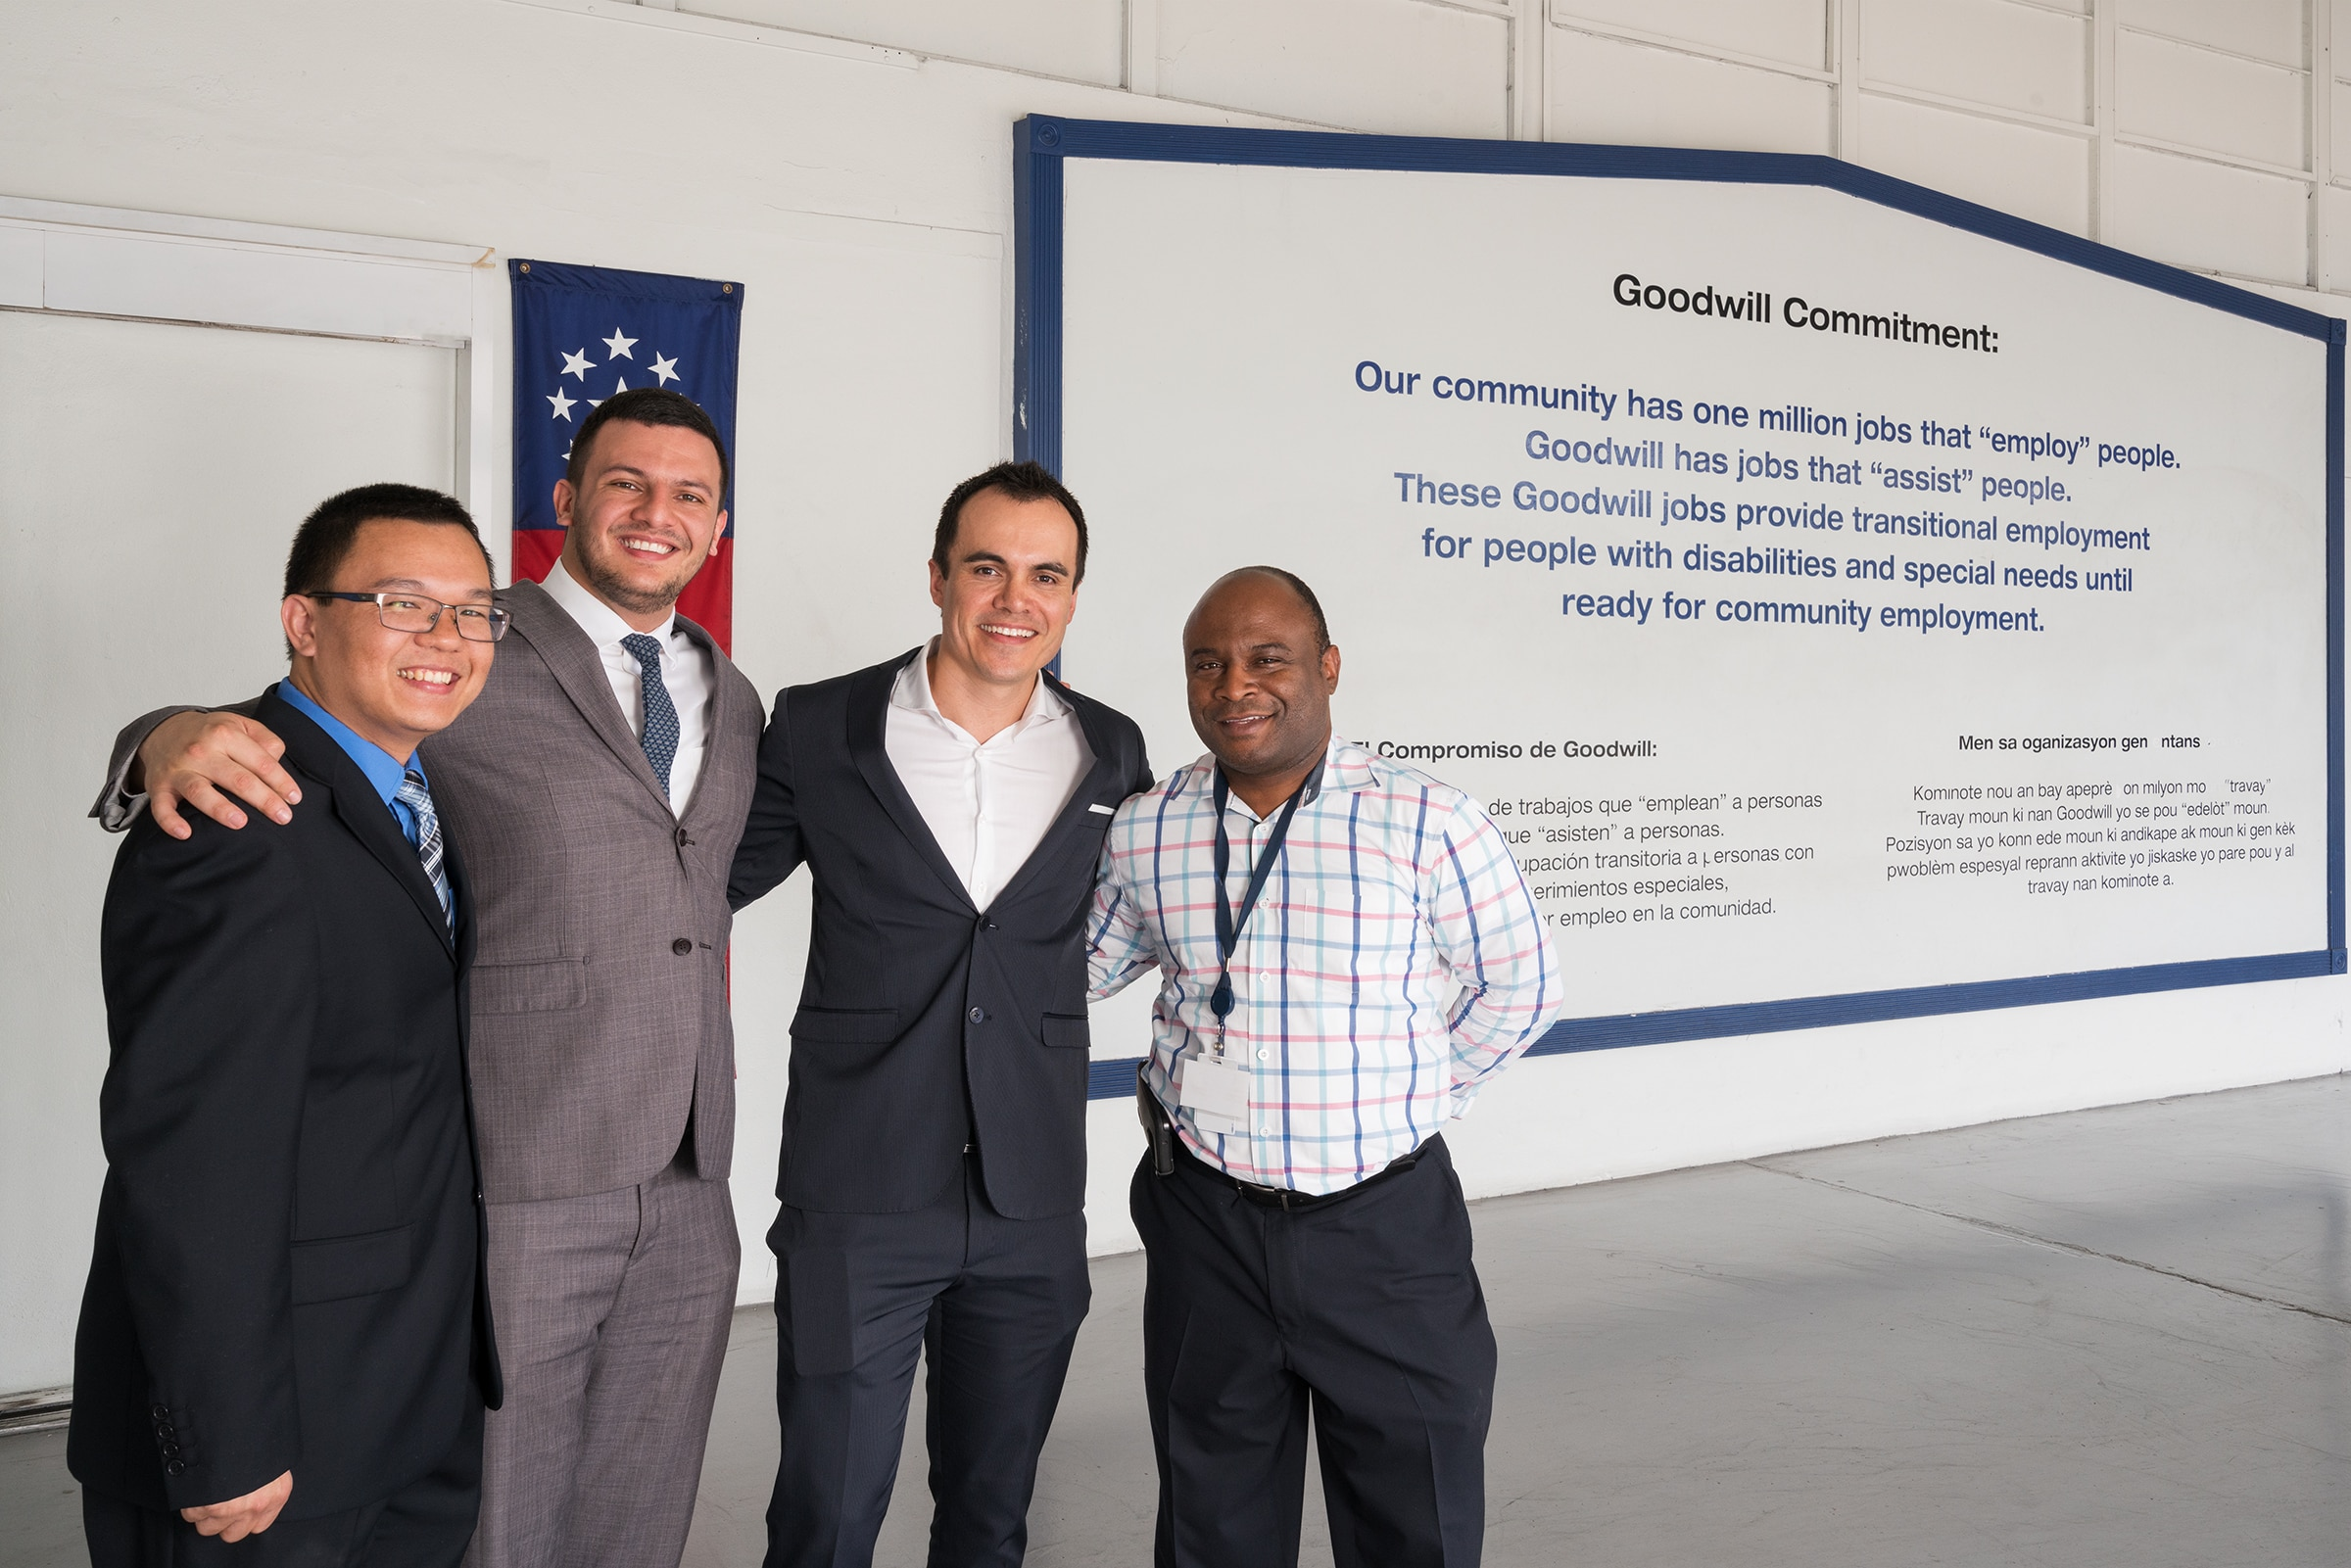 From left to right: Zuo Wang, Engineer at Soutec, Pedro Colmenares, Account Executive at Soutec, Julian Pinzon, Managing Director at Soutec, Sam Robinson, IT Manager at Goodwill of South Florida.